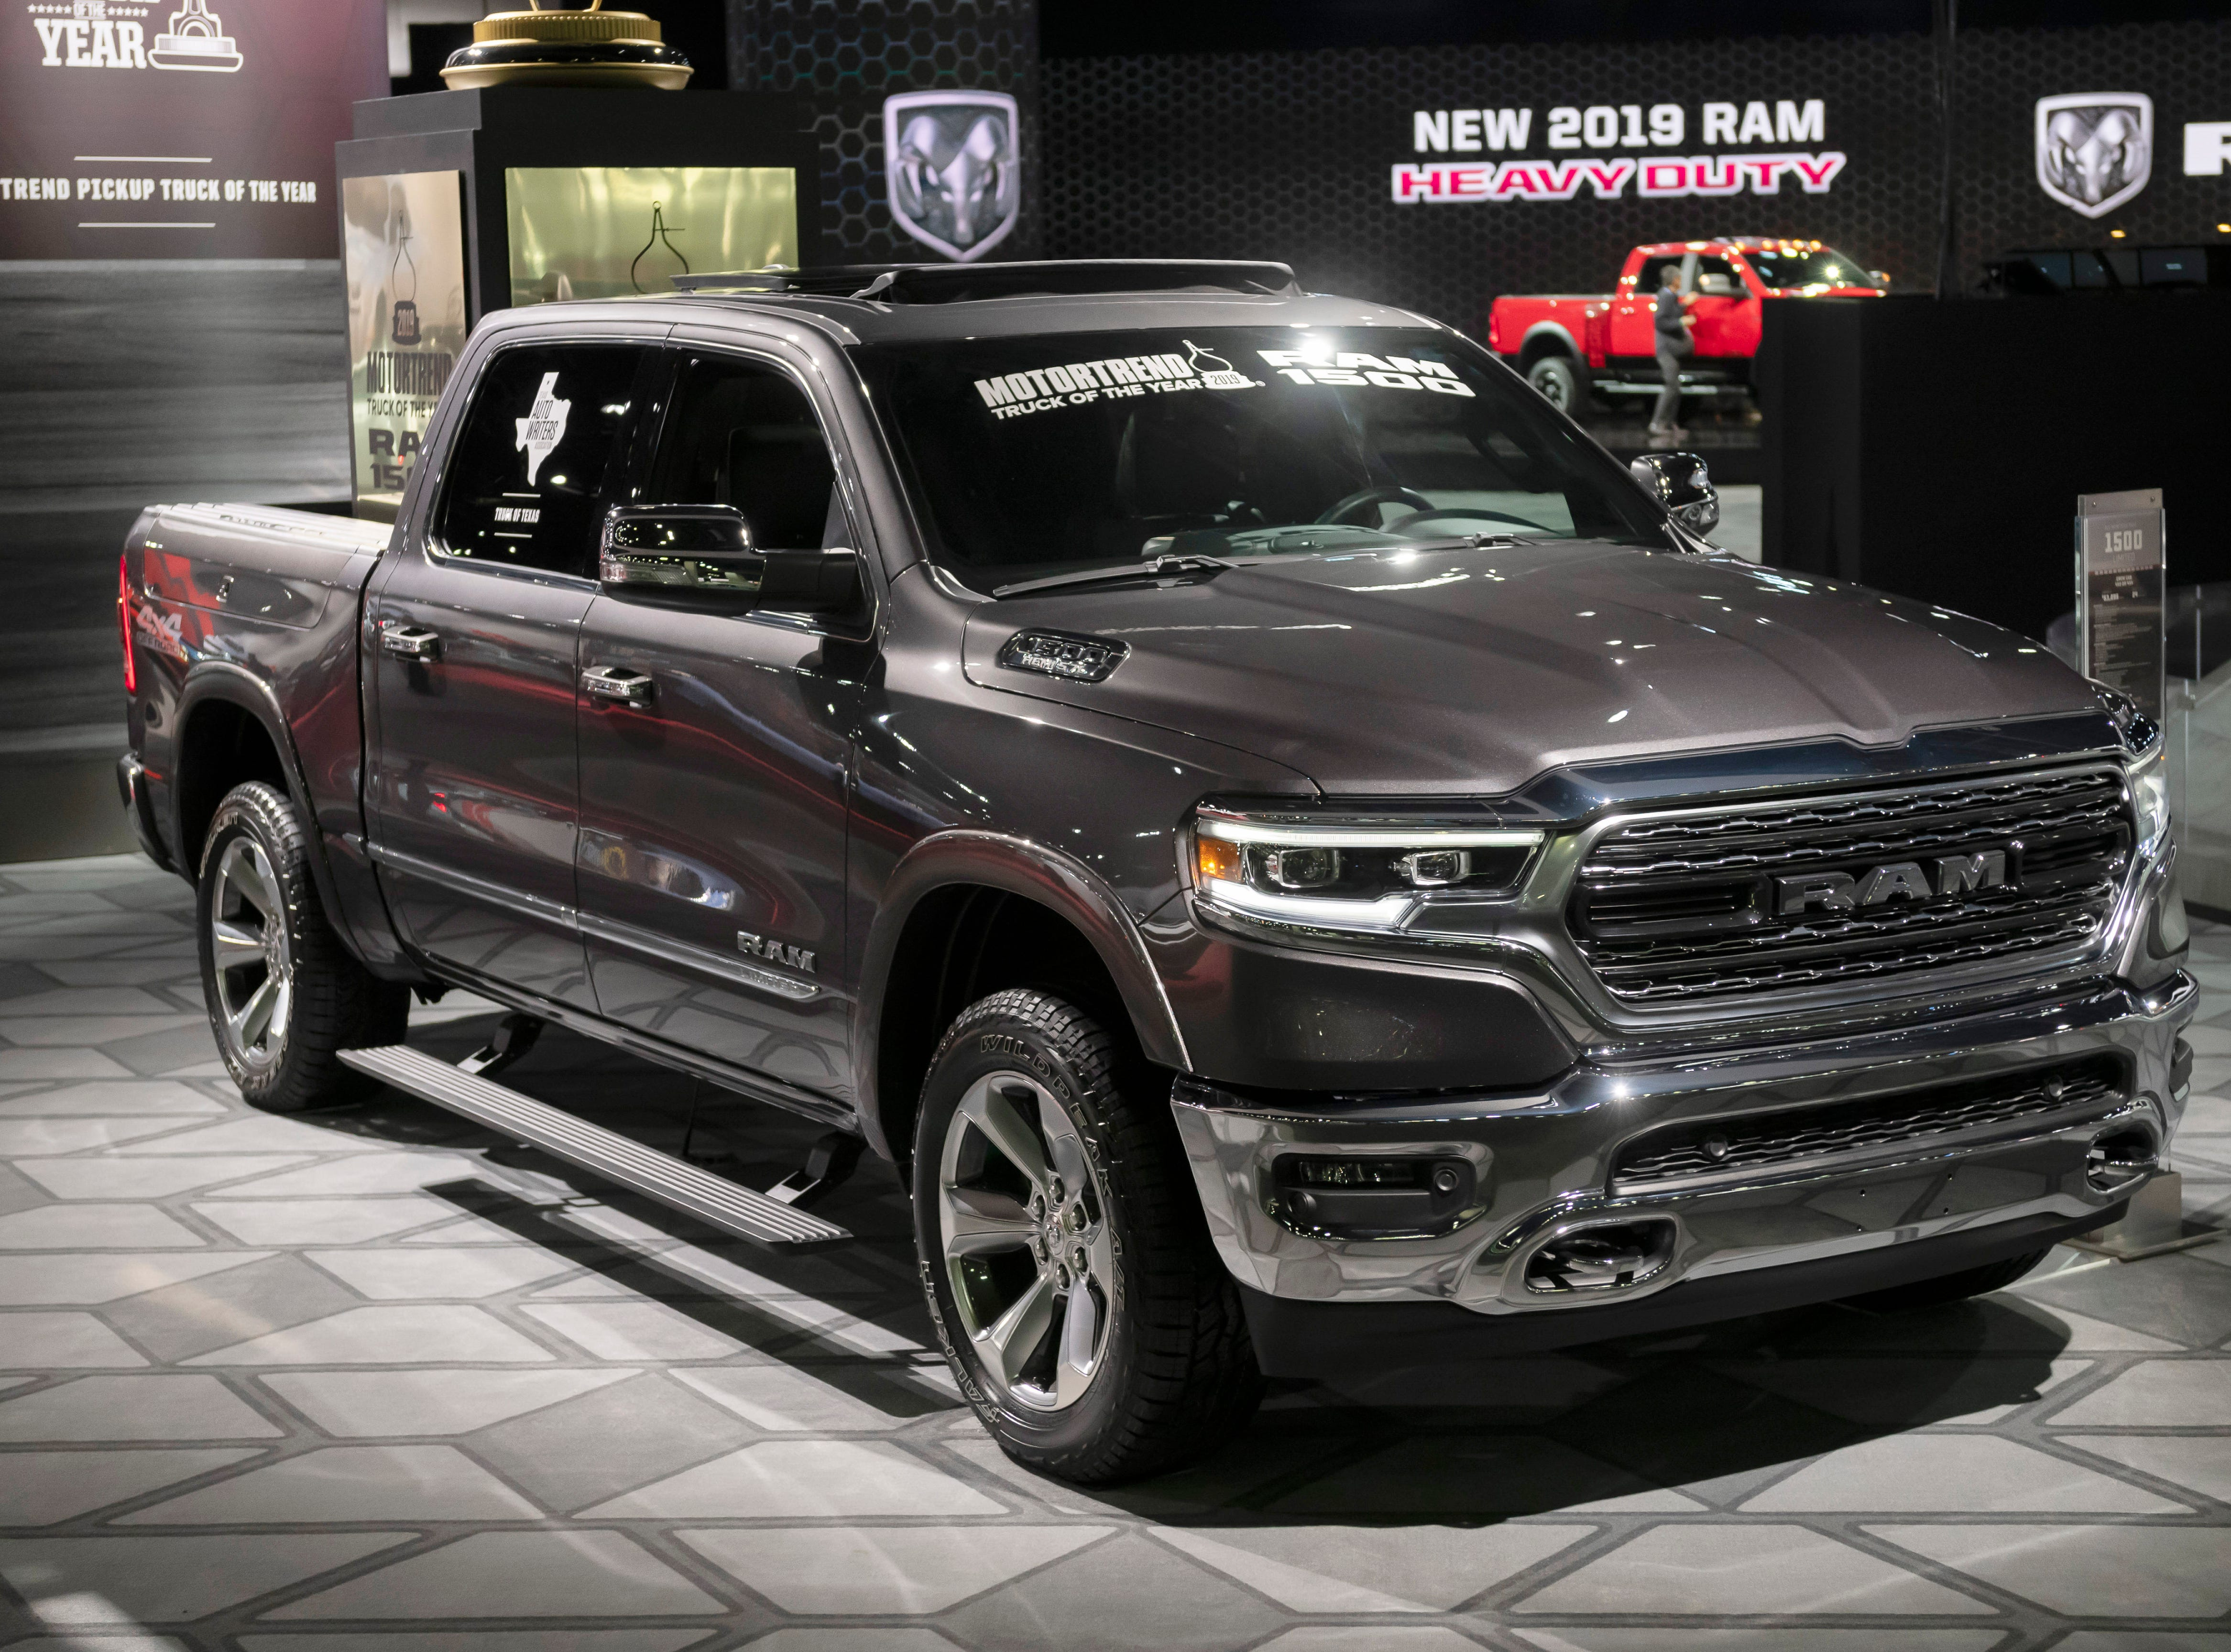 Coolest Technology: Dodge Ram 1500